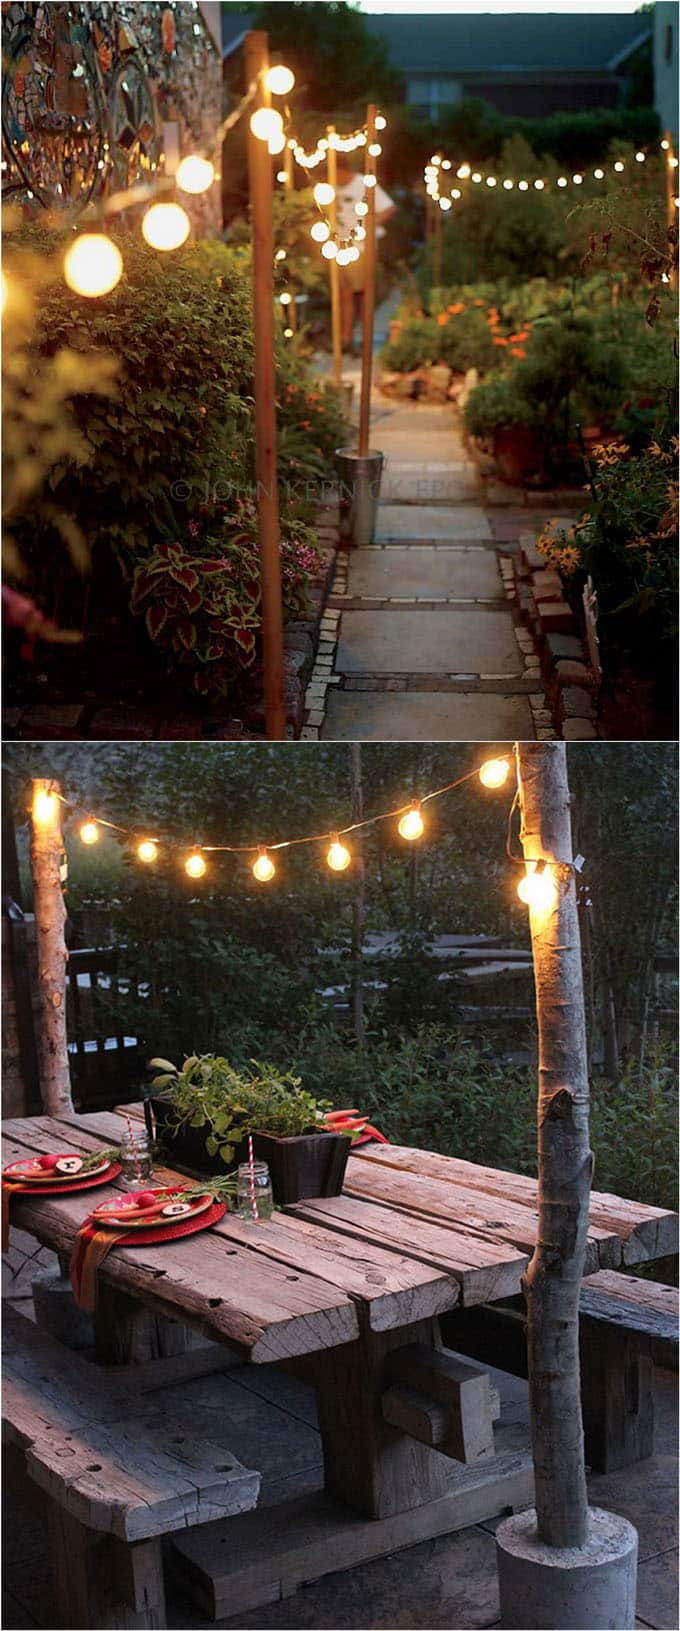 Outdoor Lighting Ideas Diy 28 stunning diy outdoor lighting ideas so easy a piece of diy outdoor lighting ideas for patios and walkways workwithnaturefo